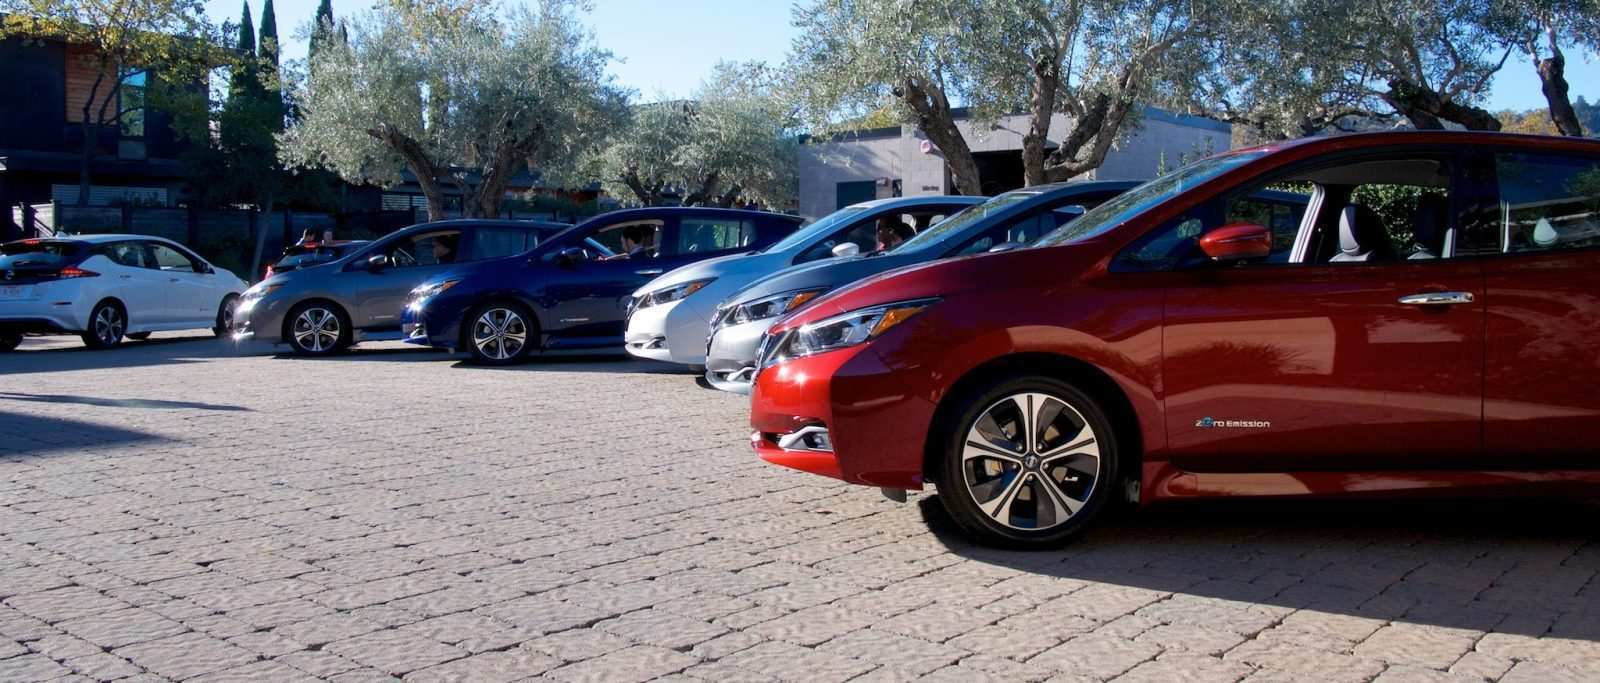 89 All New 2019 Nissan Leaf Range Picture